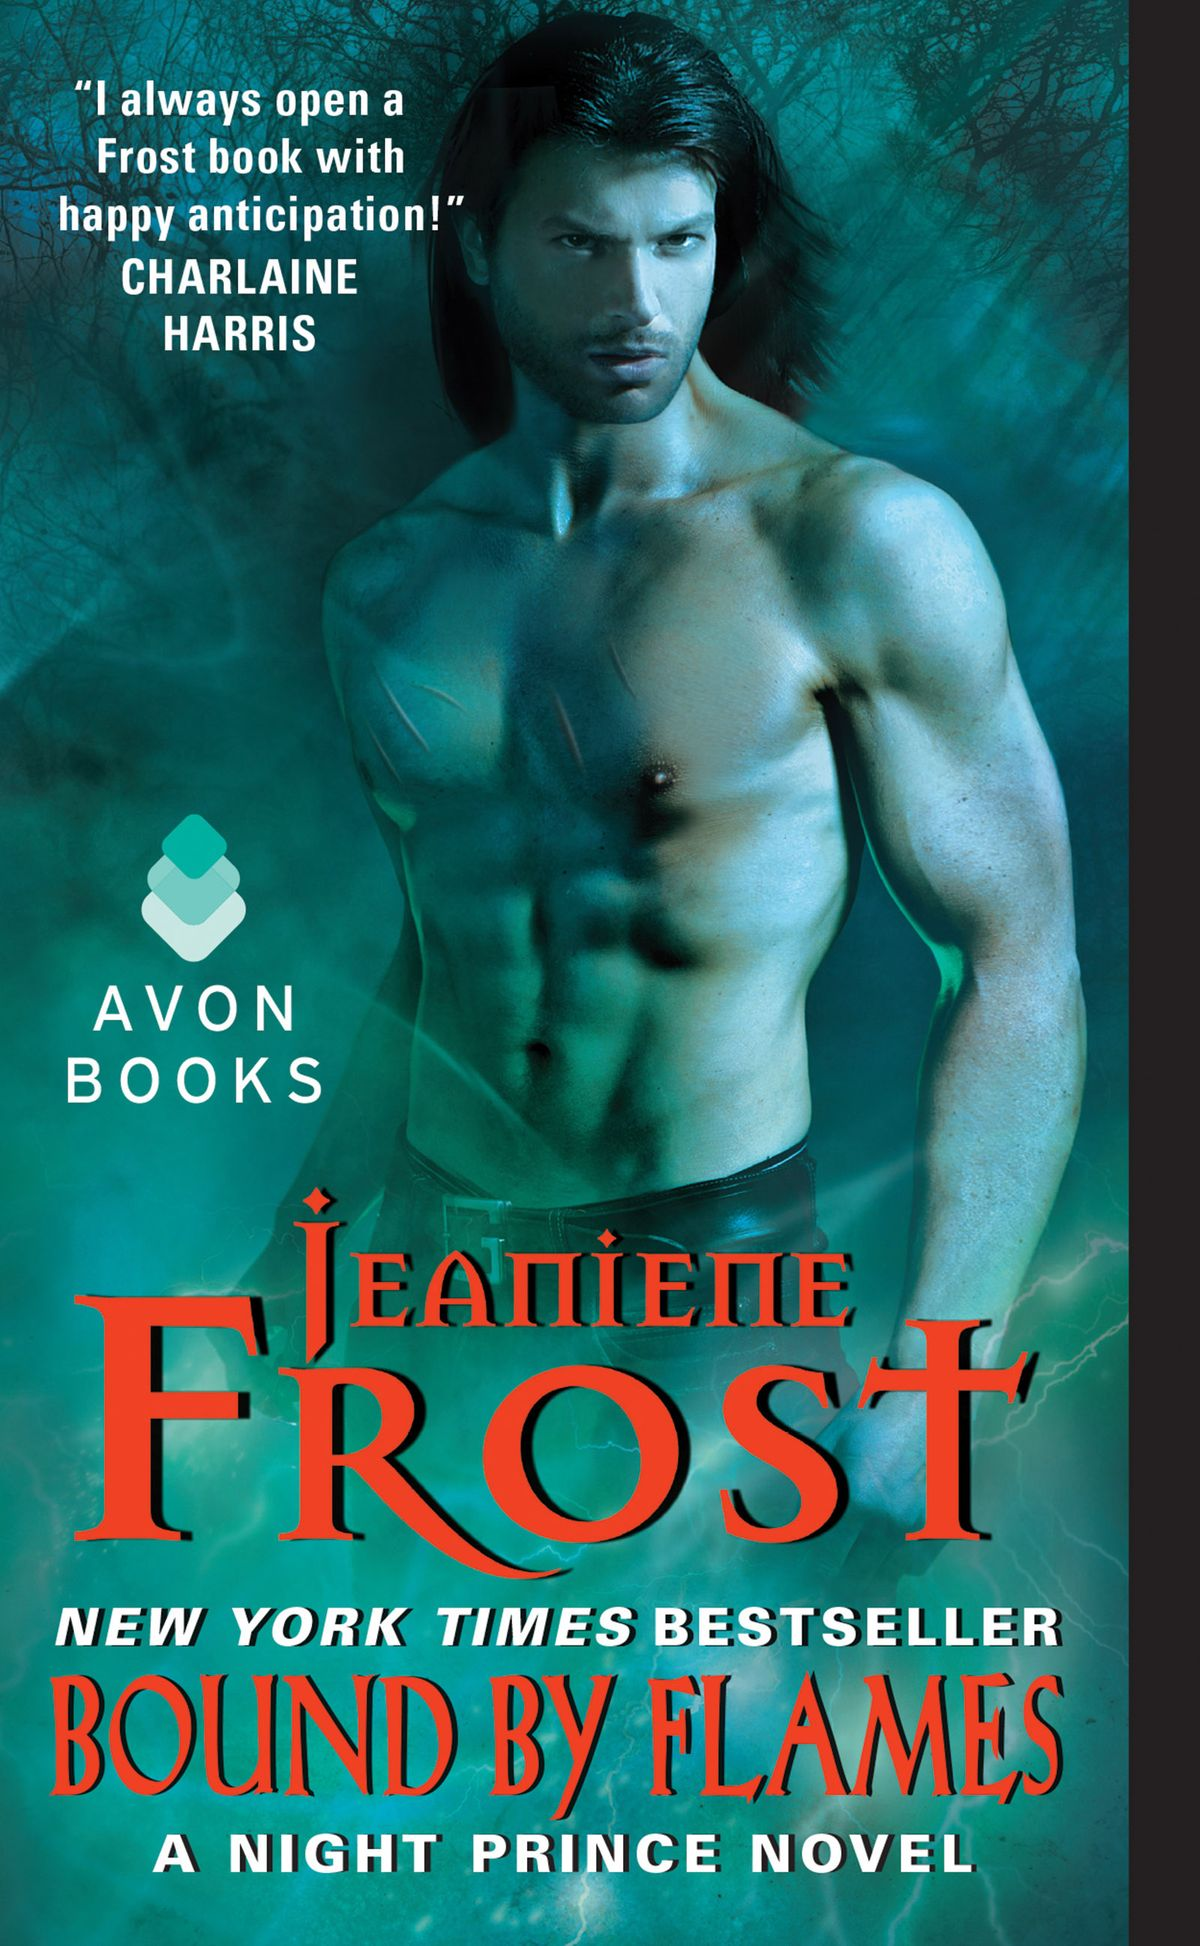 Book Review | Bound by Flames by Jeaniene Frost